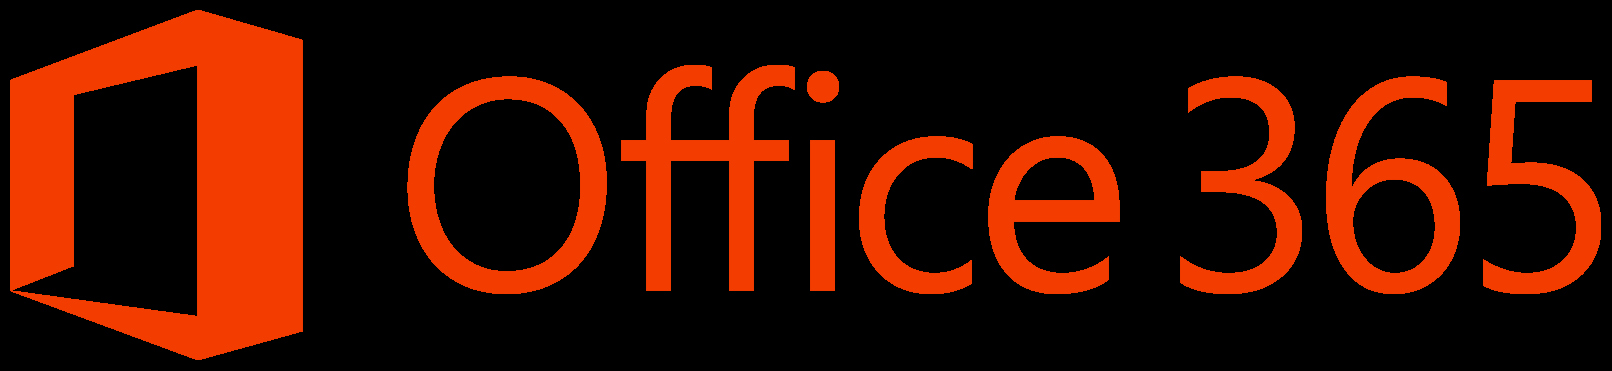 Ms Office 365 Sign In Lovely Microsoft Fice 365 Small Business